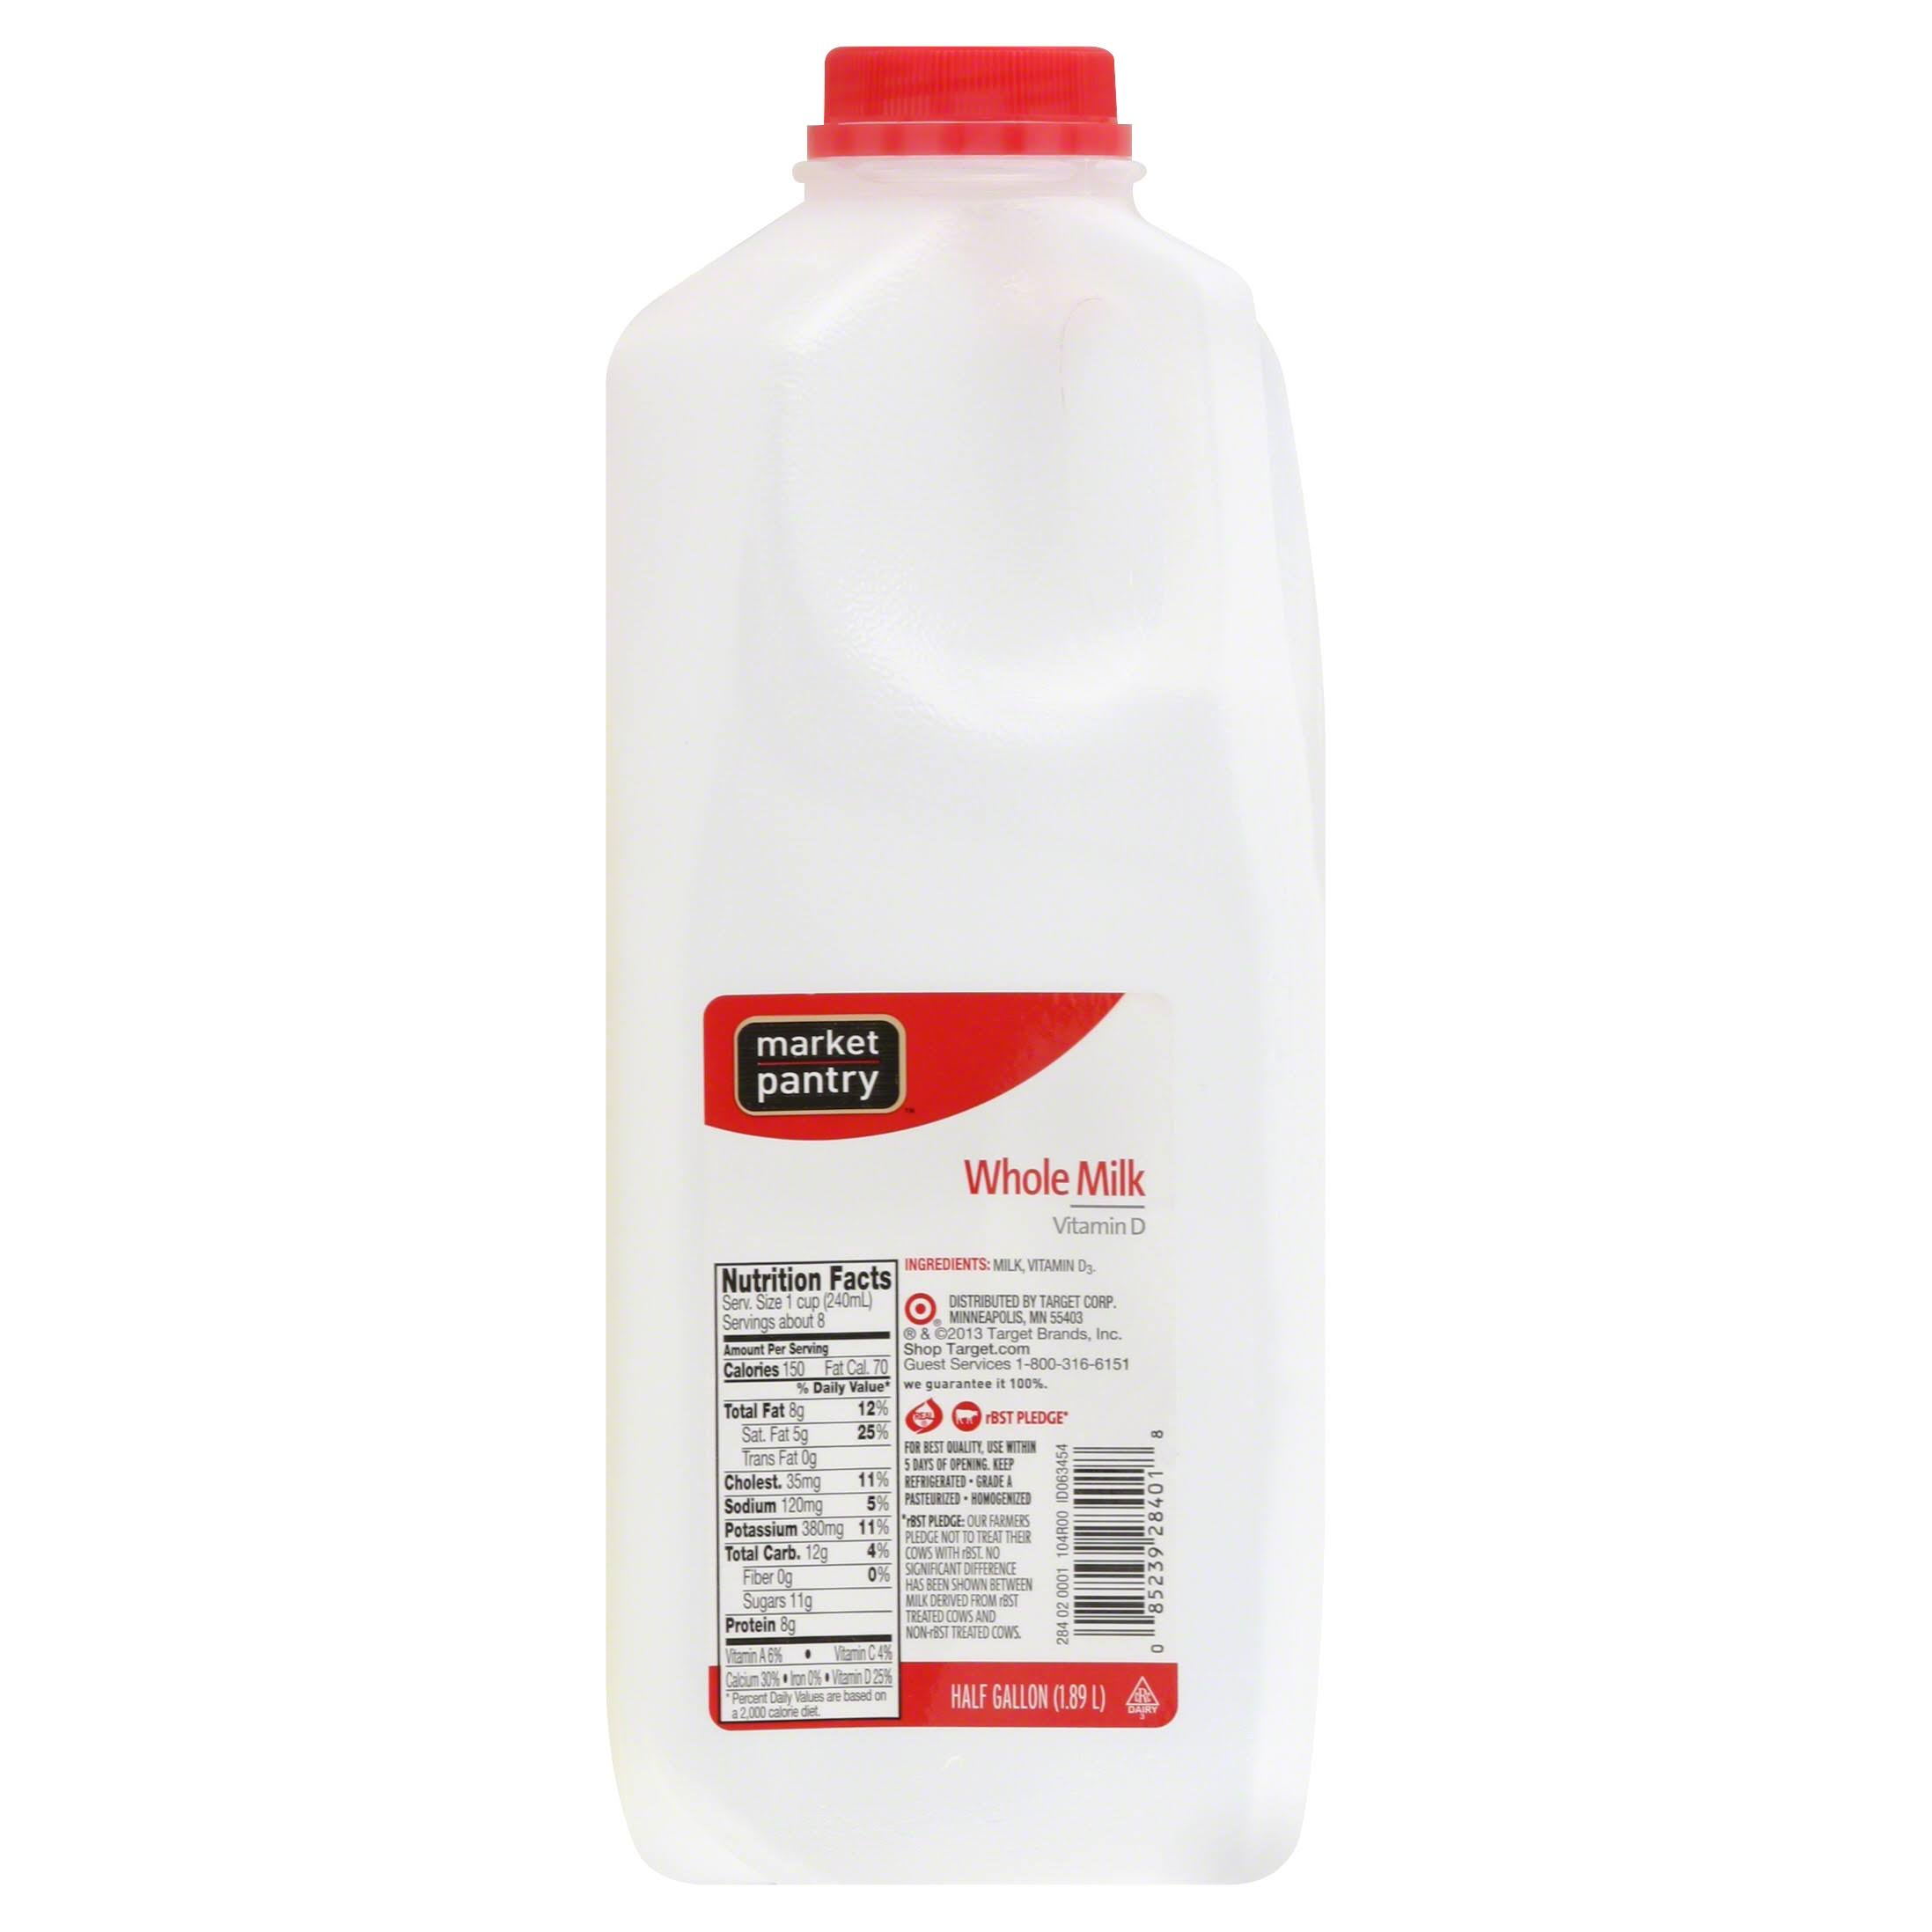 Market Pantry Milk, Whole - 0.5 gl (1.89 lt)